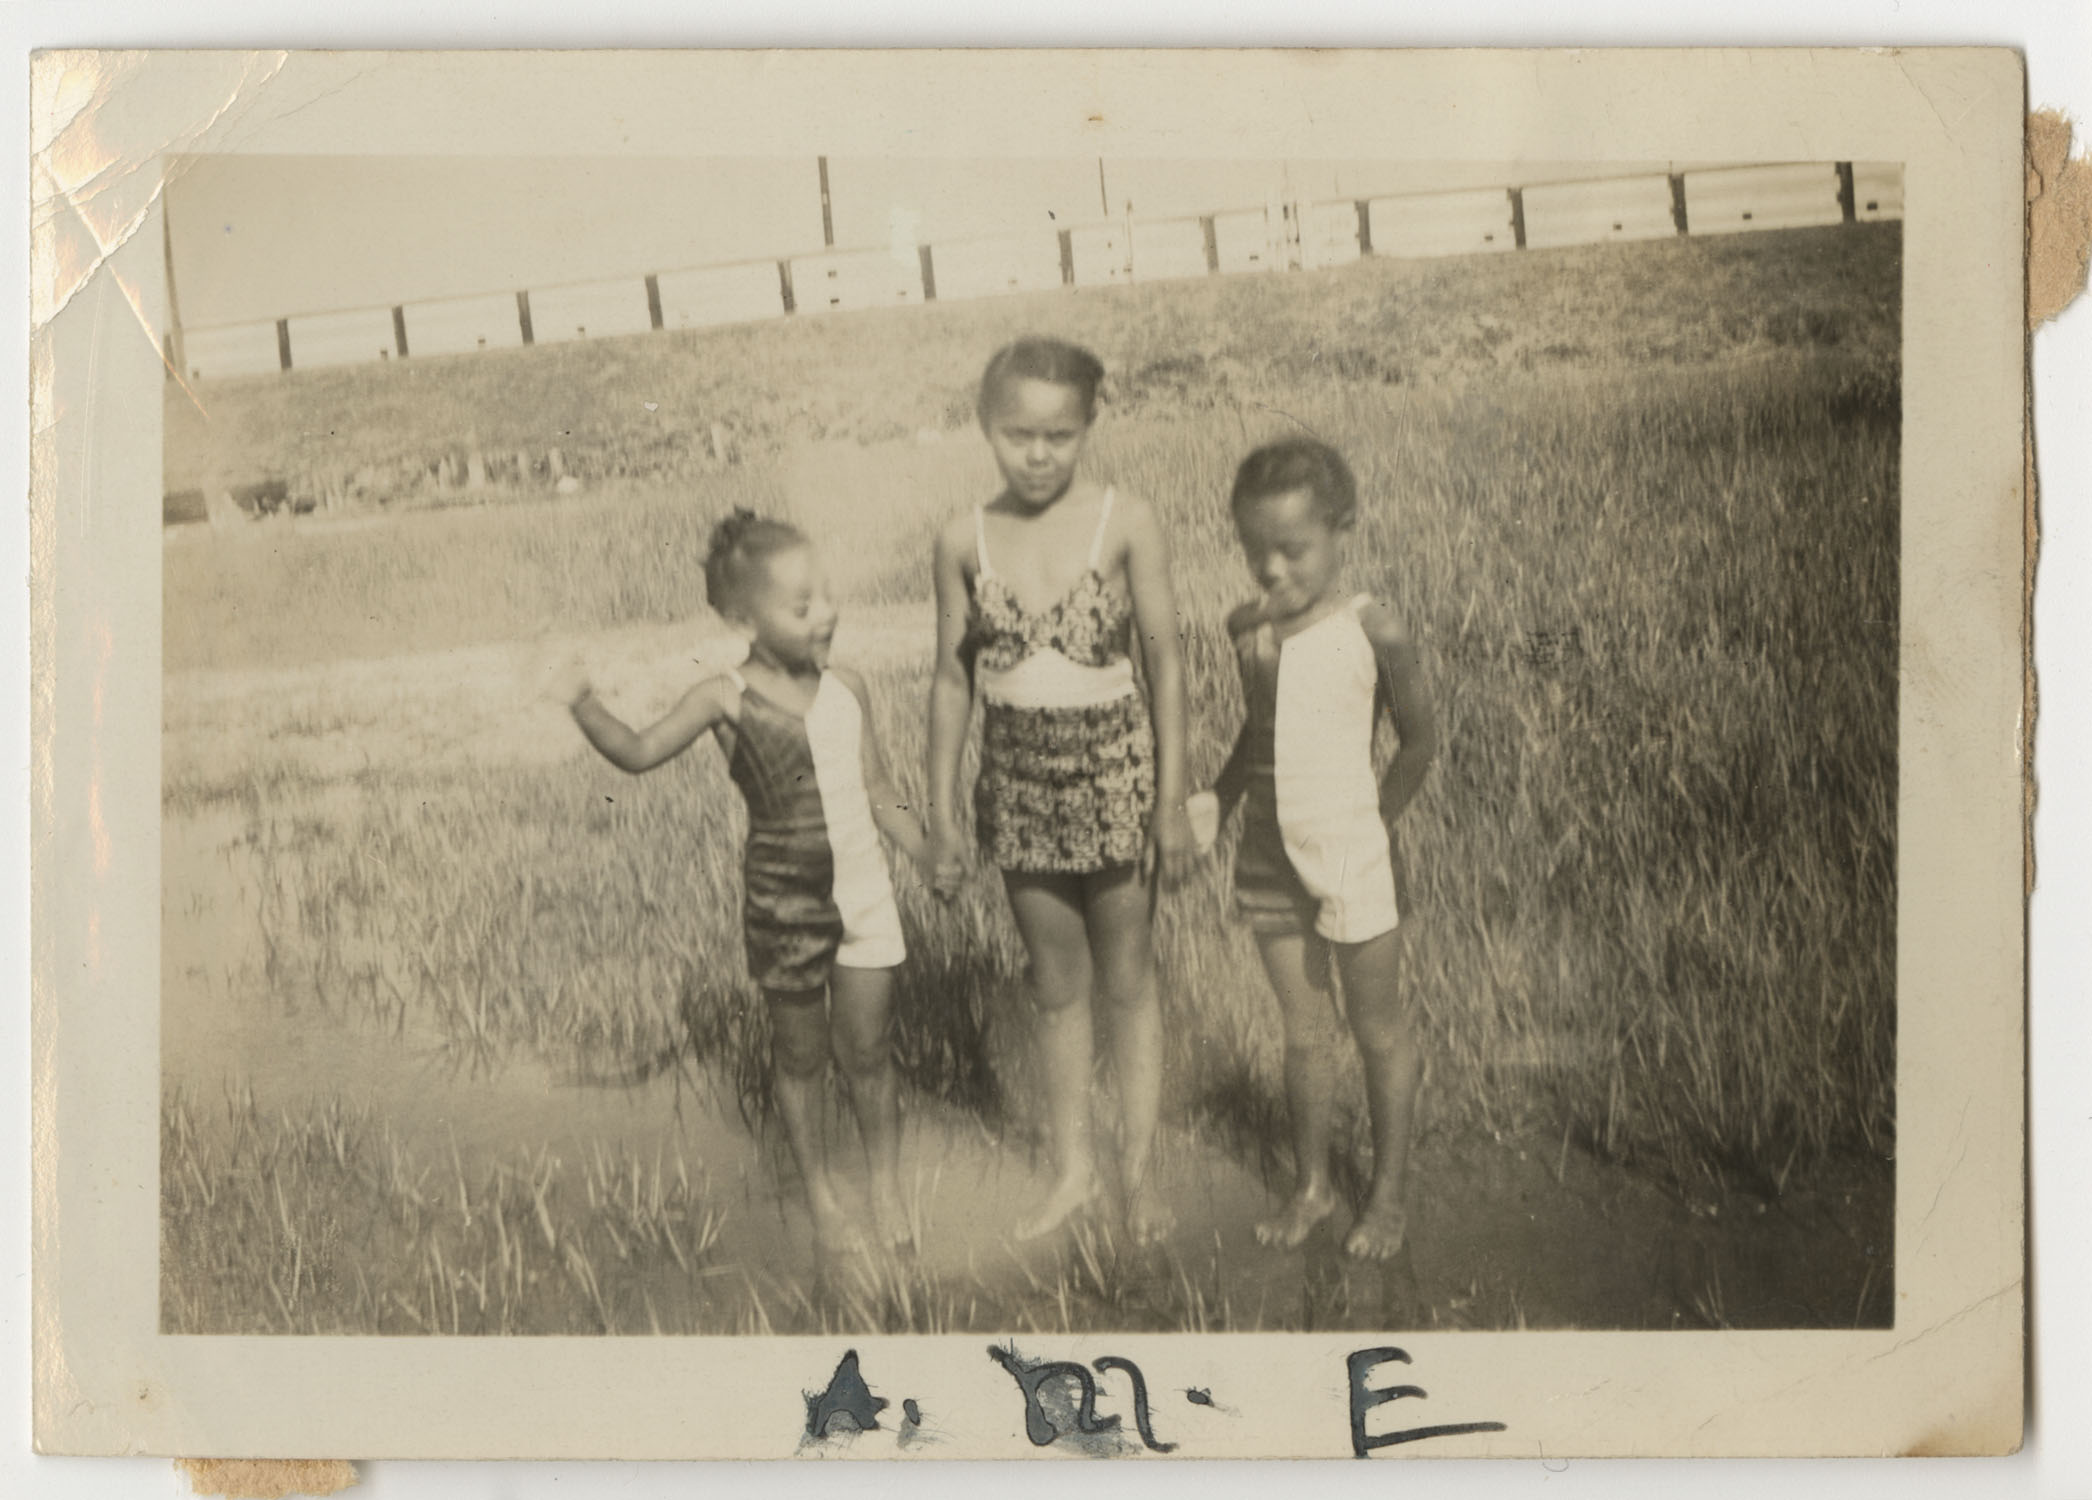 Three Children on Sullivans Island, July 4, 1941